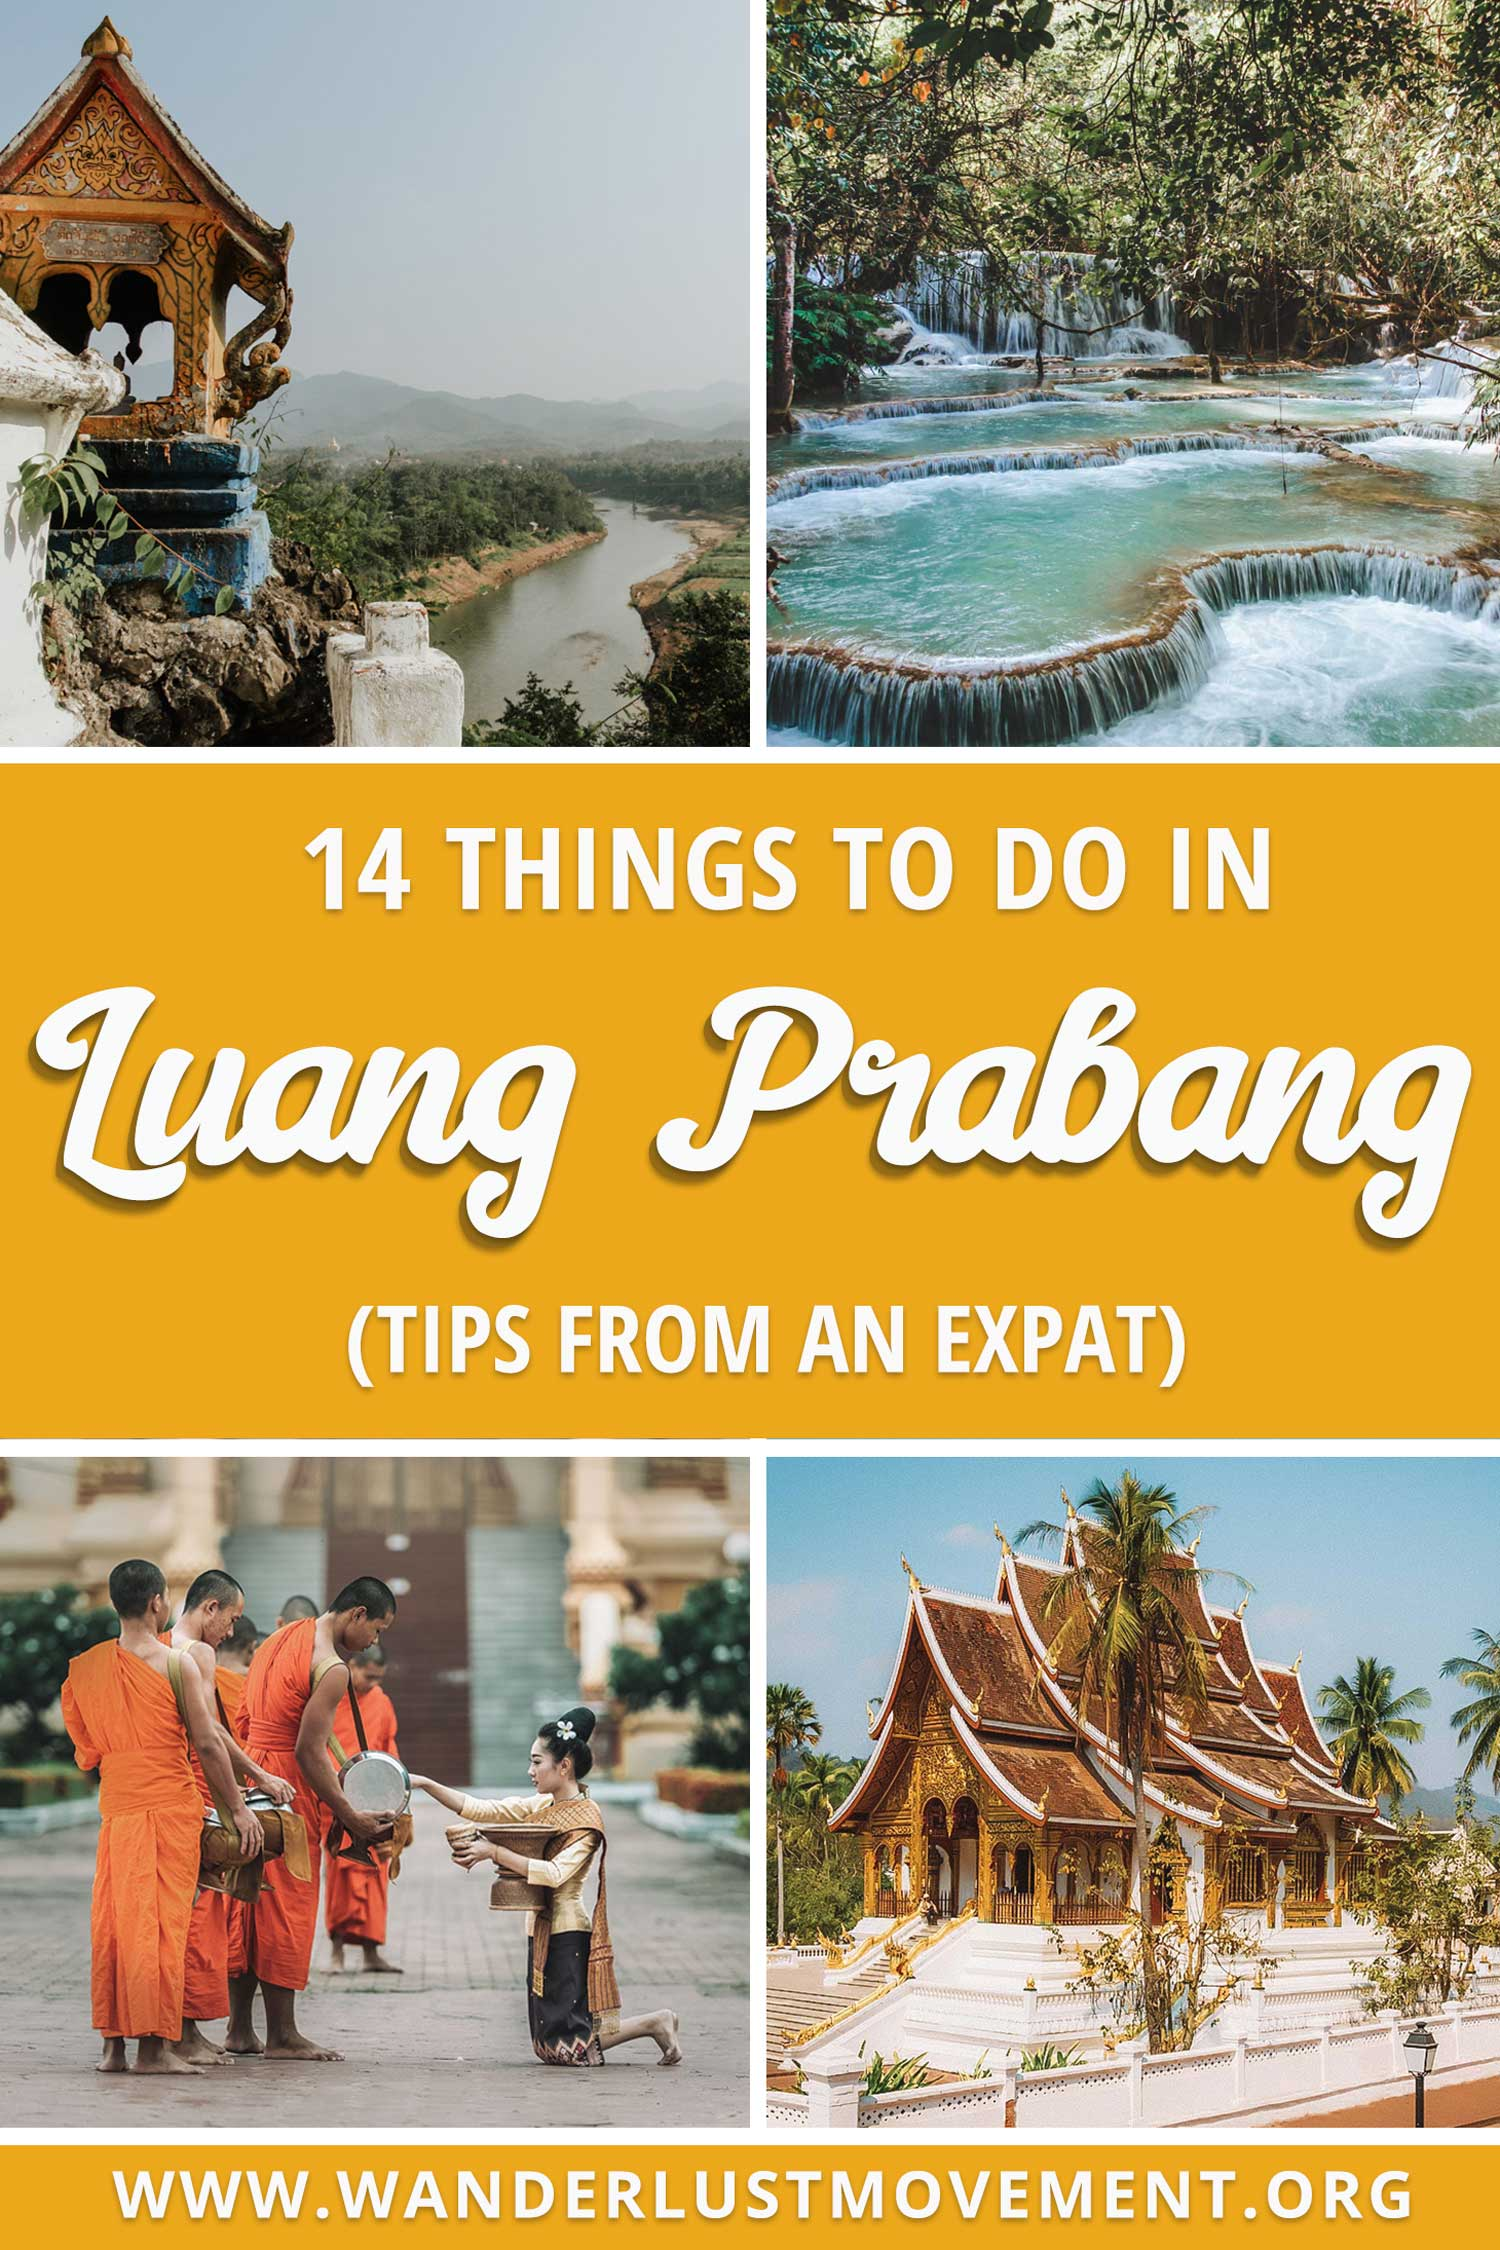 14 Amazingly Unique Things to Do in Luang Prabang (An Expat's Guide)